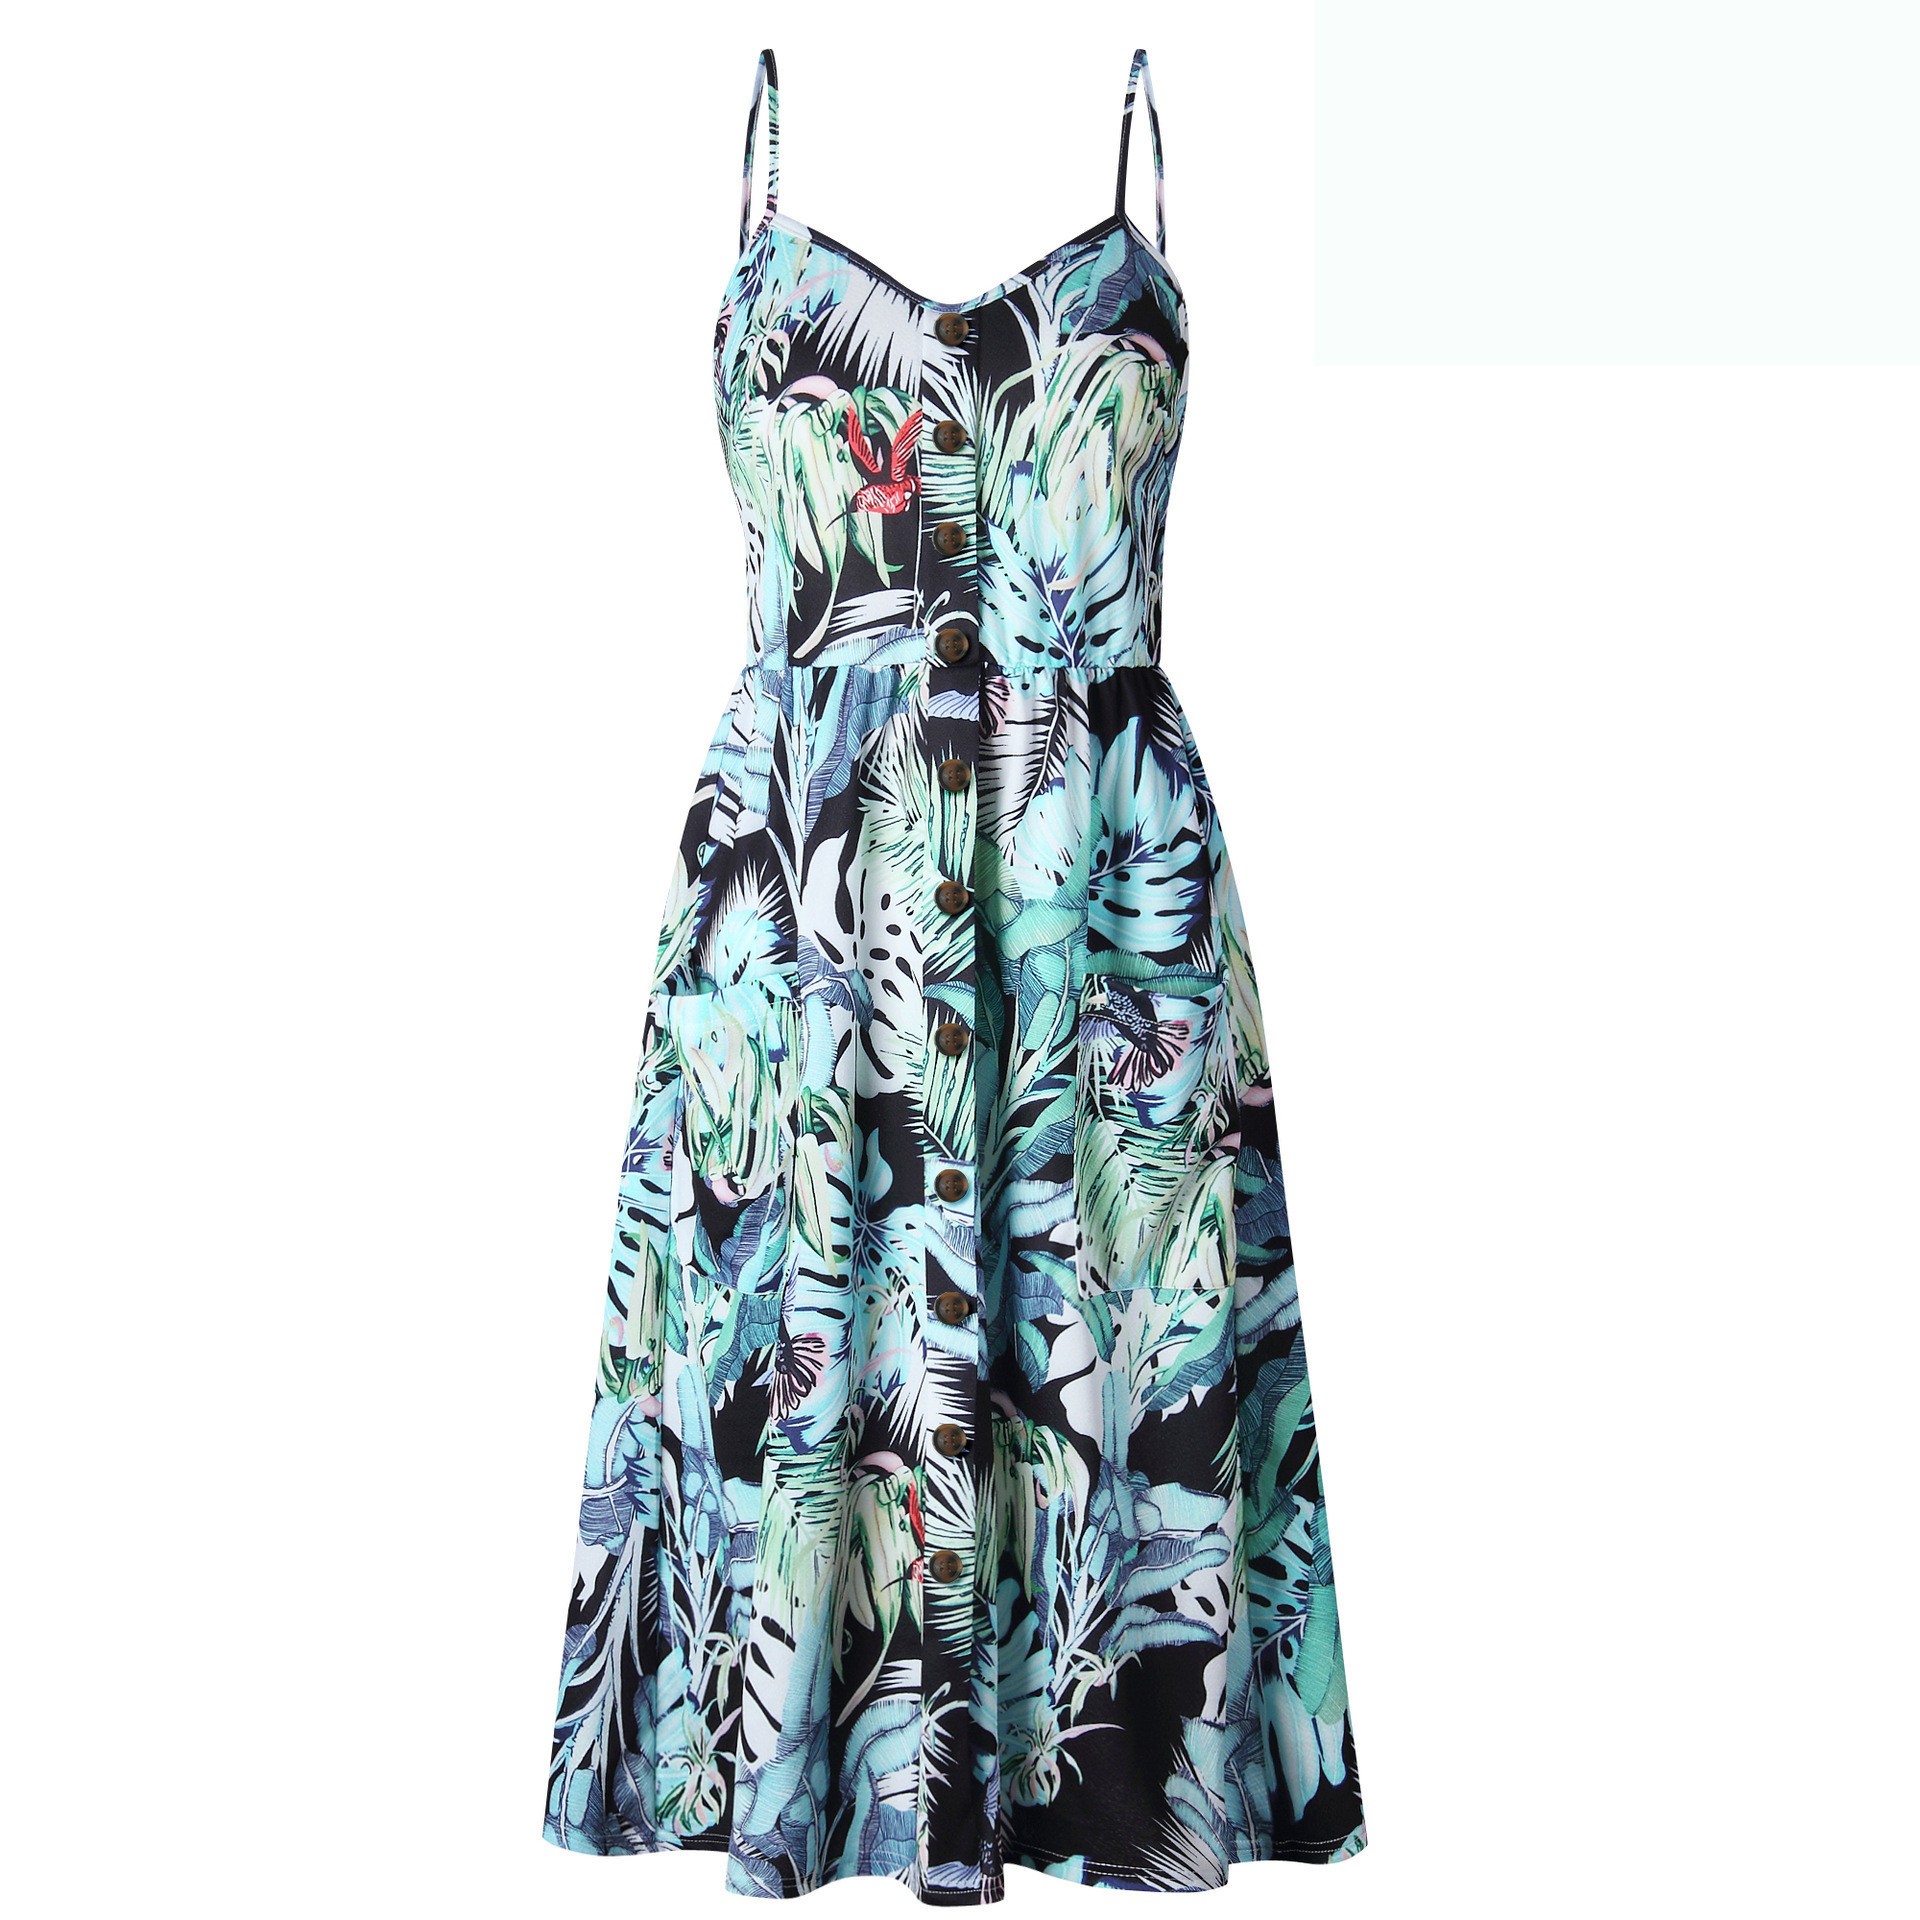 Sexy Off shoulder Party Beach Sundress Spaghetti Midi Dresses Plus Size 2019 Summer Women Strap Dress Button Print Striped Robe in Dresses from Women 39 s Clothing